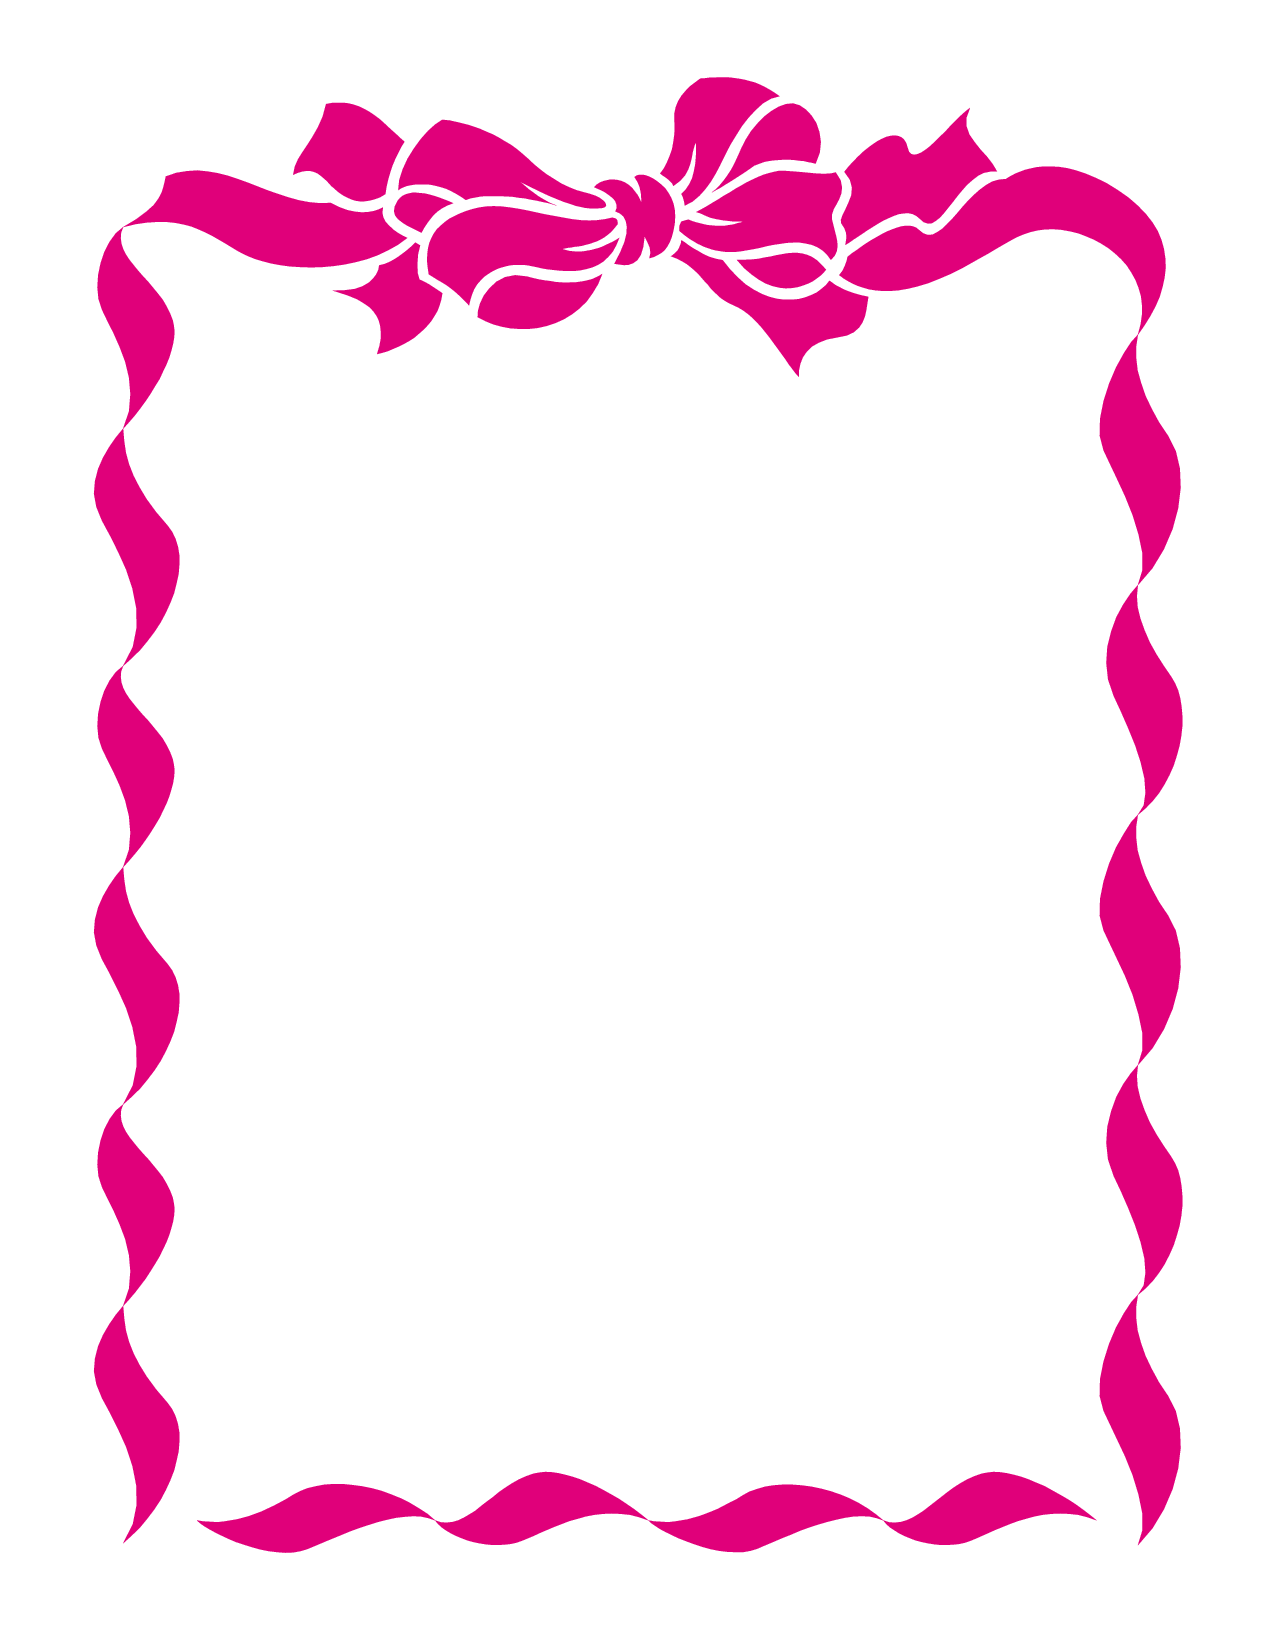 Printable breast cancer ribbon clipart